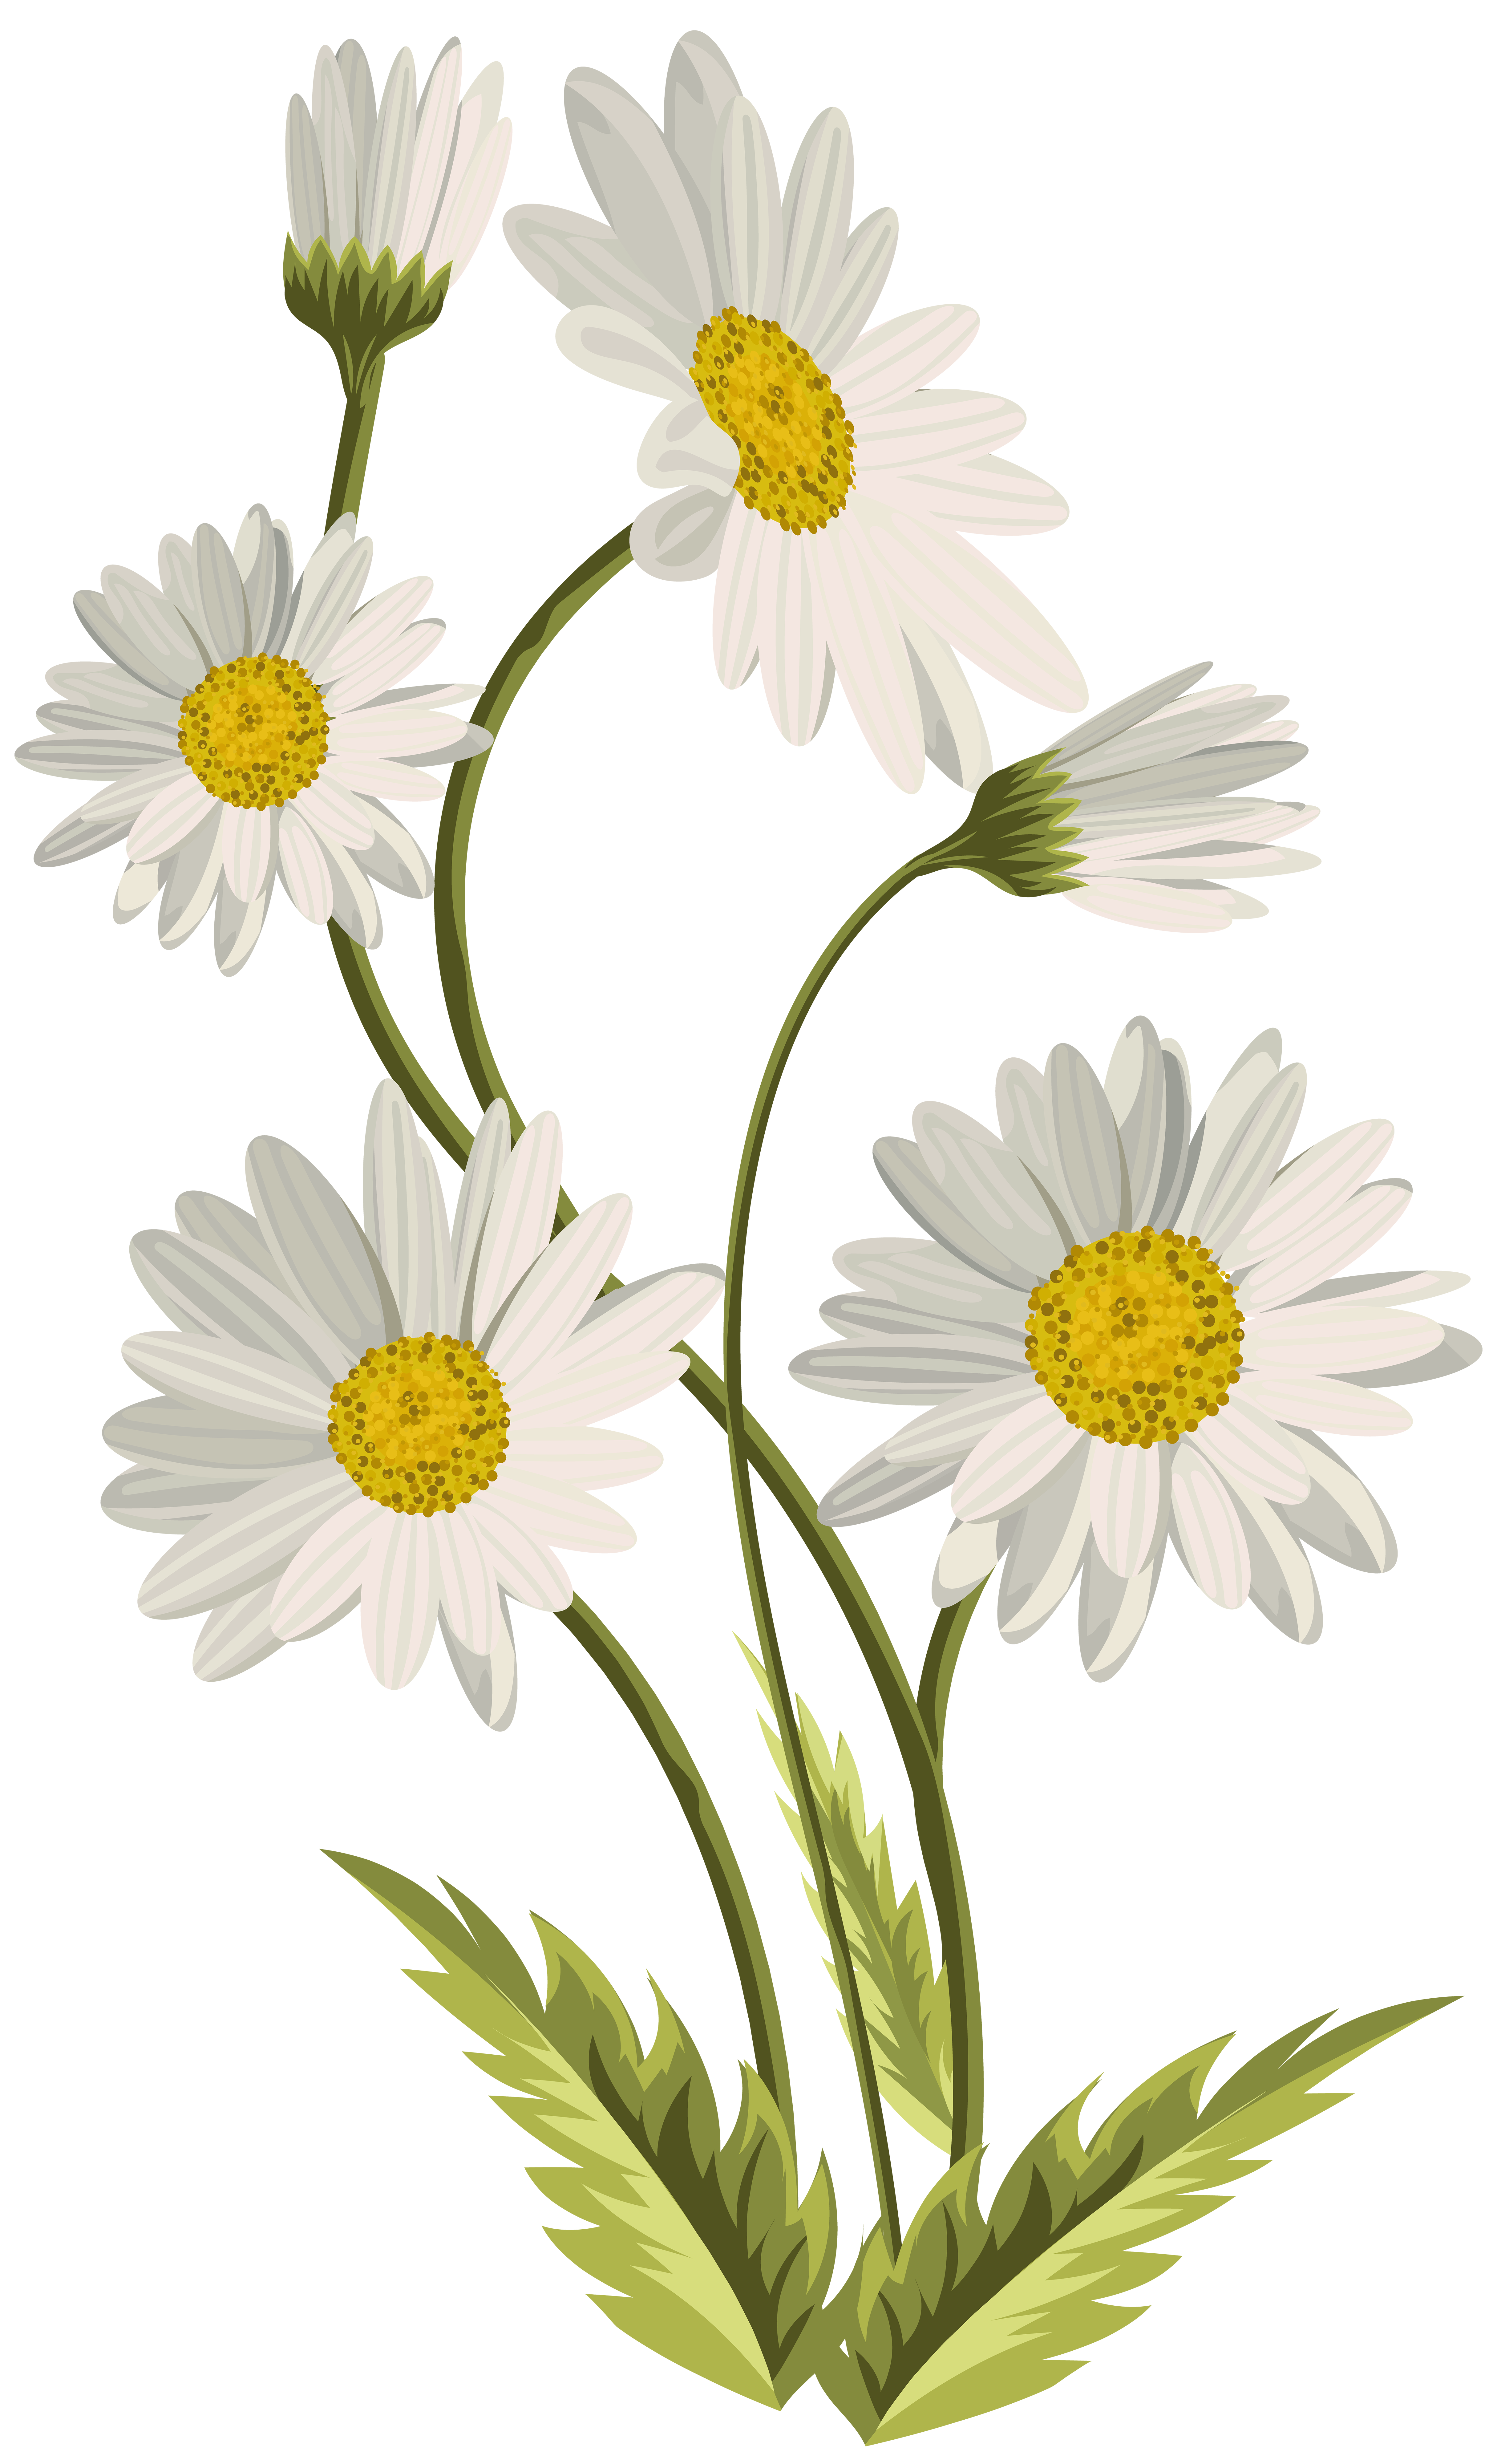 Daisies clipart png royalty free stock Daisies Transparent PNG Clip Art Image | Gallery ... png royalty free stock